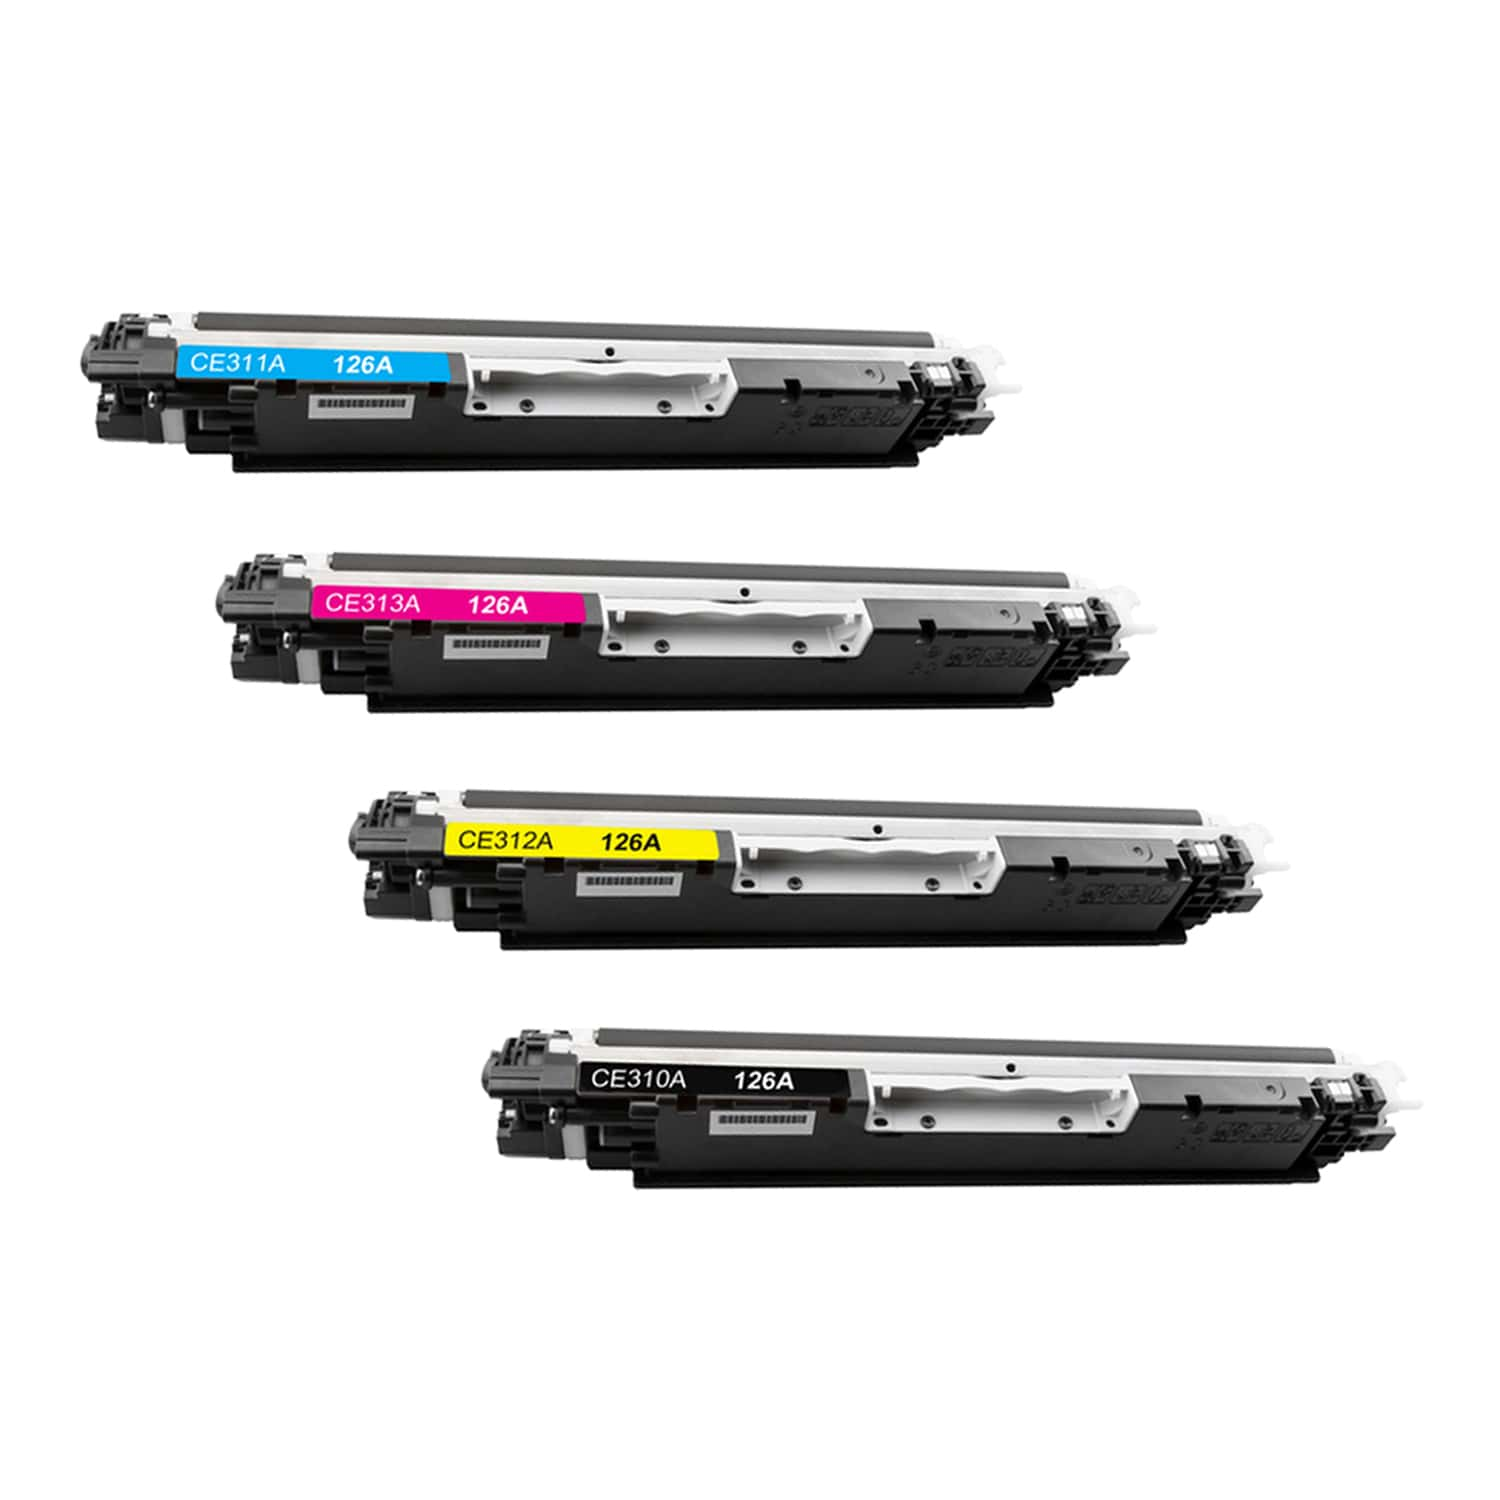 Remanufactured HP Toner Cartridge Bundlpack 126A CMYK Pack - 4 Cartridges